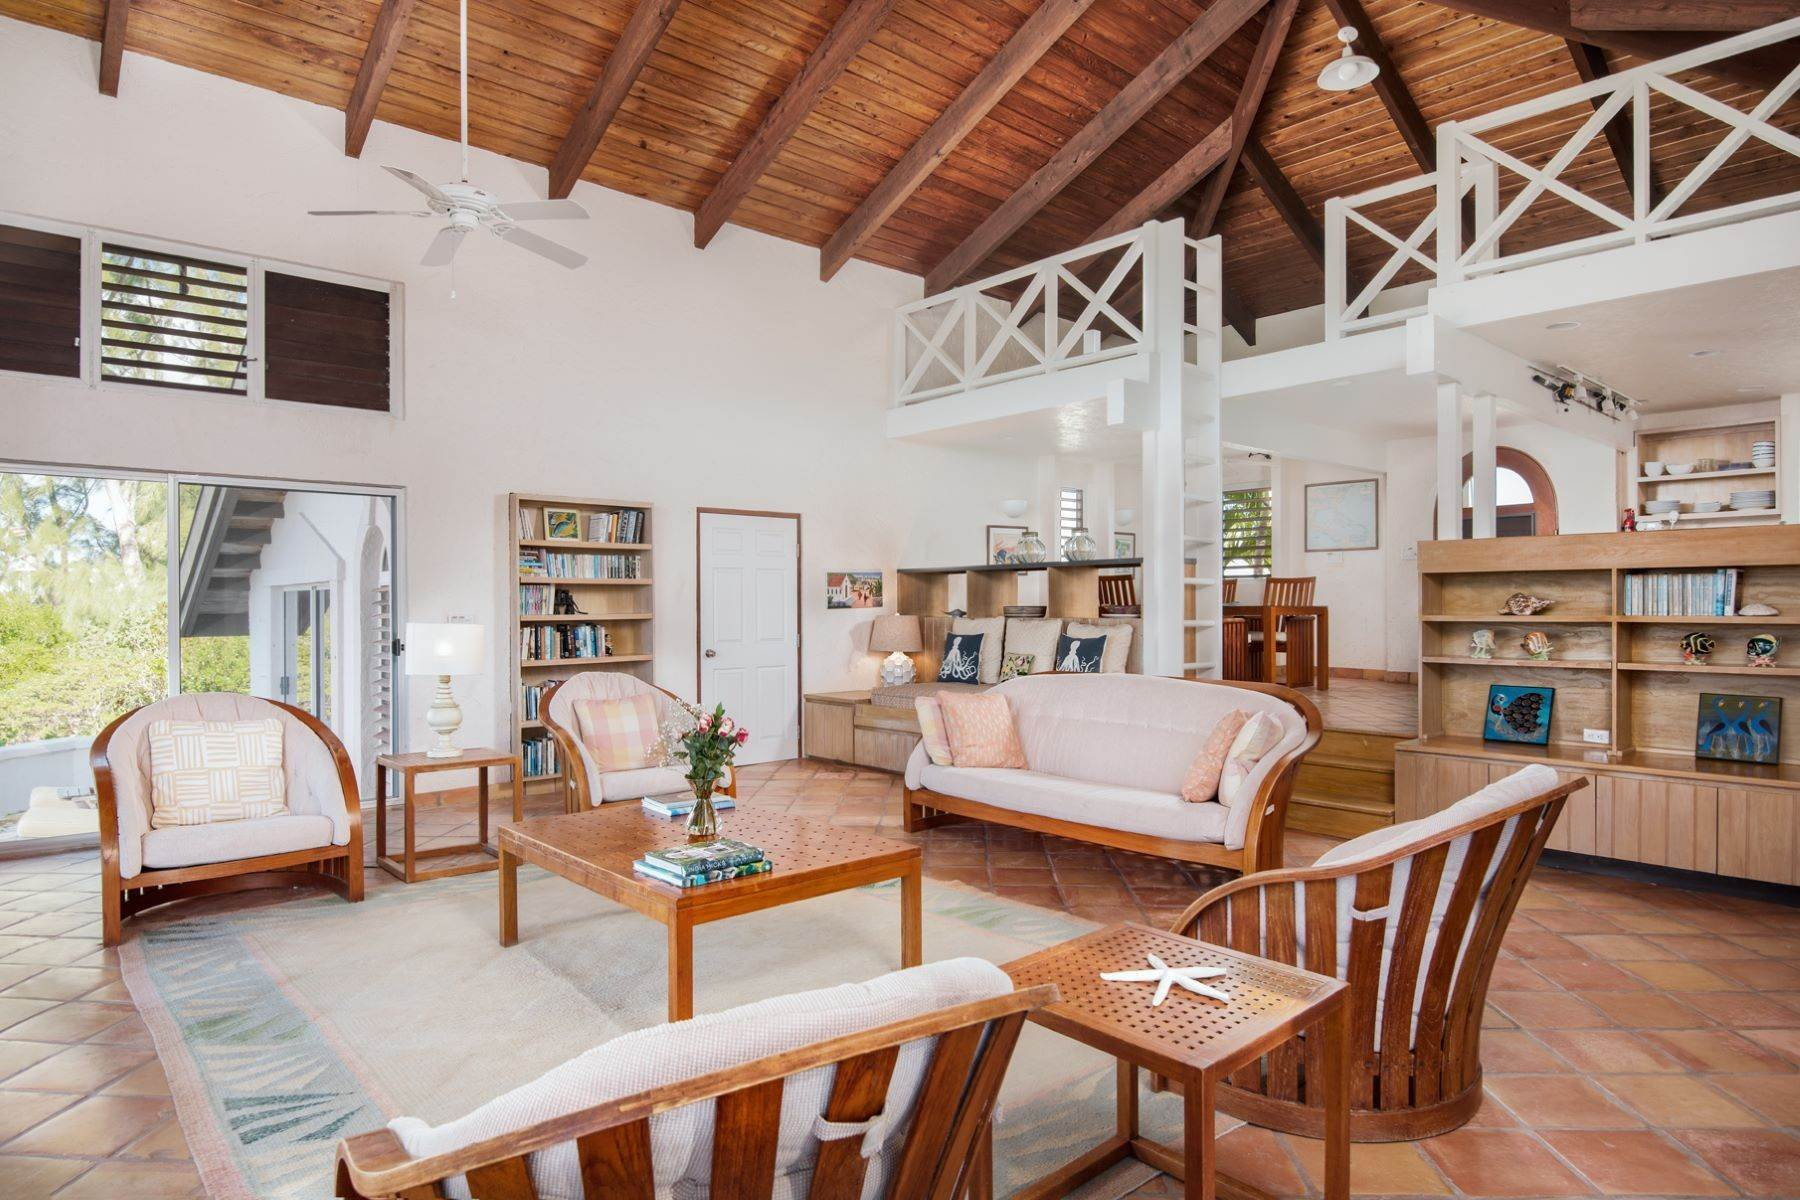 2. Single Family Homes for Sale at Casuarinas Cottage Pine Cay Pine Cay, Pine Cay TCI BWI Turks And Caicos Islands